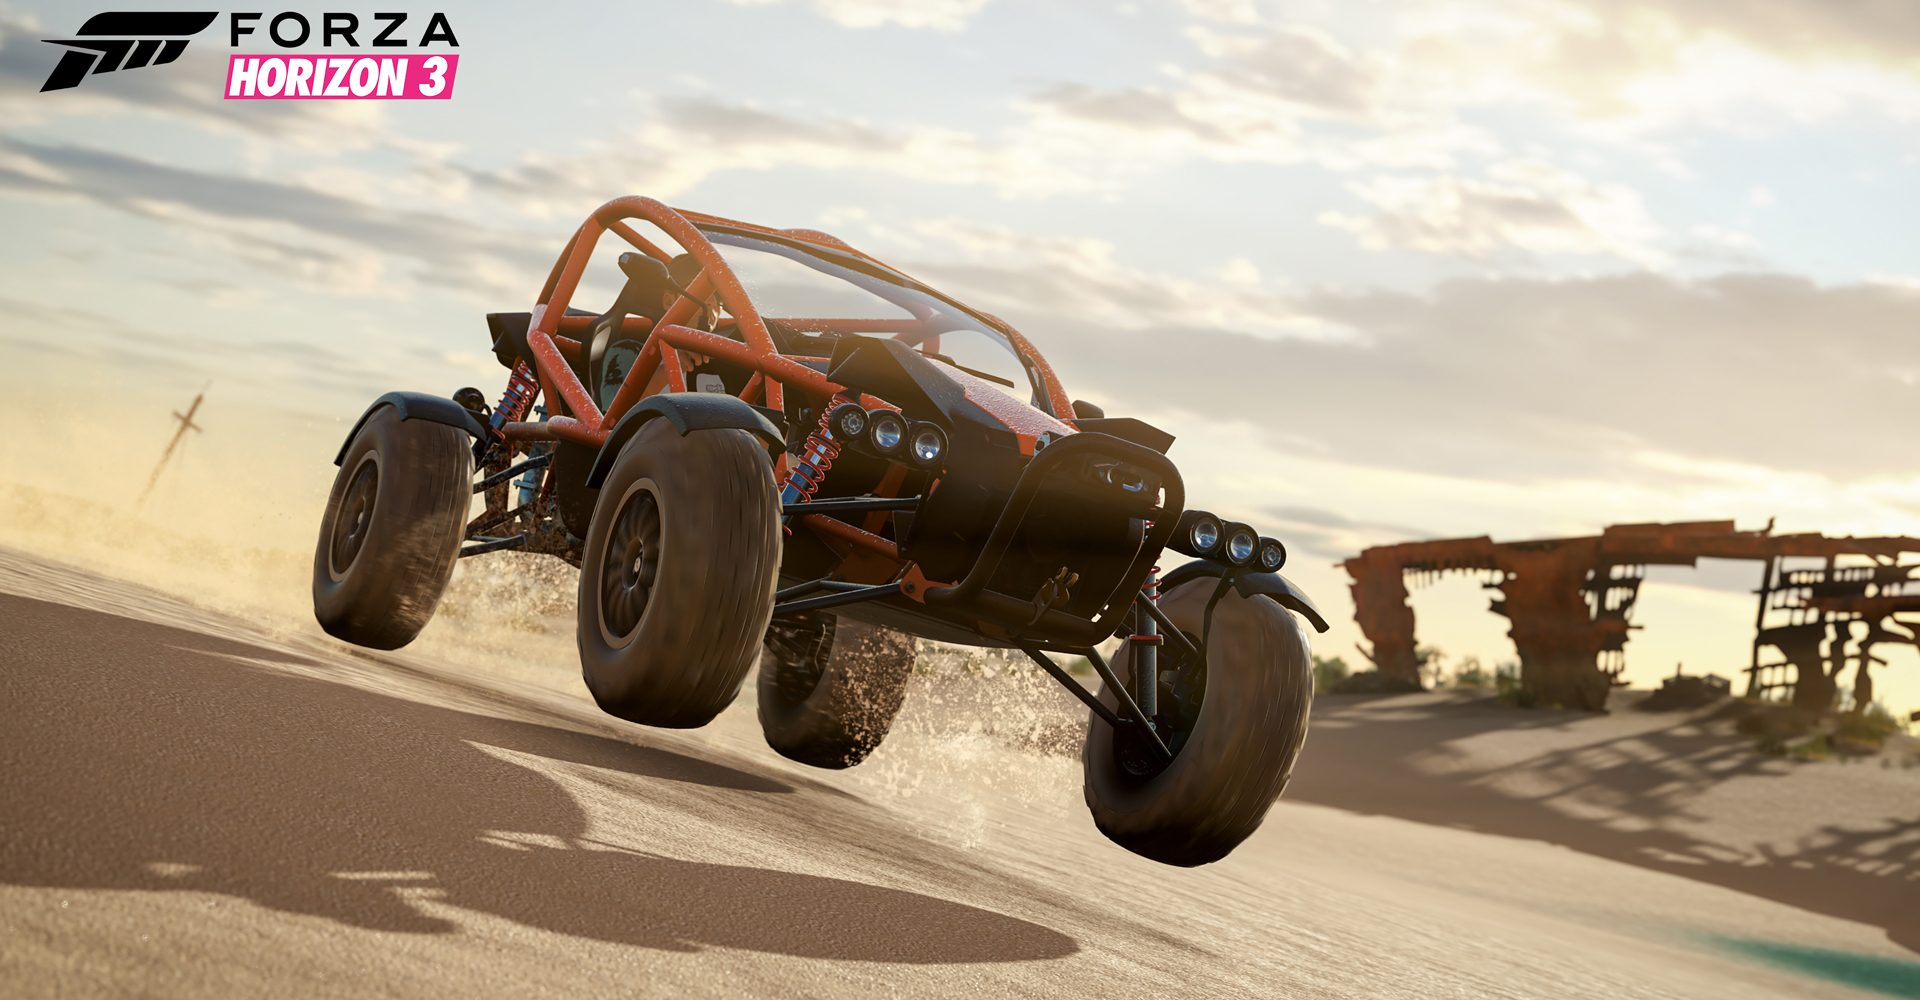 Forza Horizon 3's Future Car List Revealed By Mistake